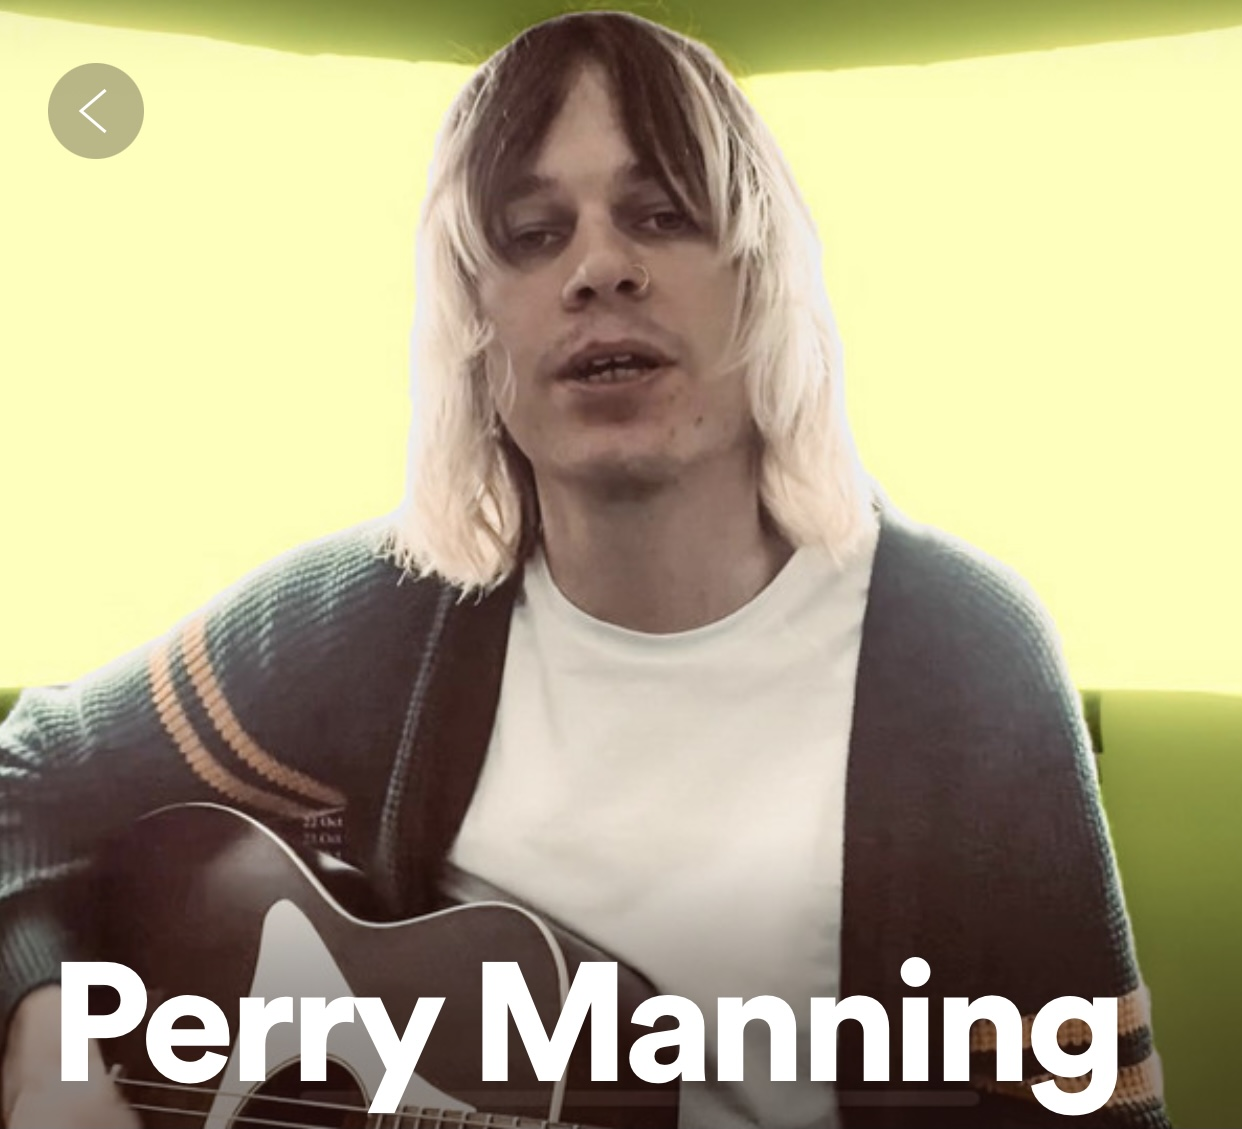 60 SECONDS WITH PERRY MANNING